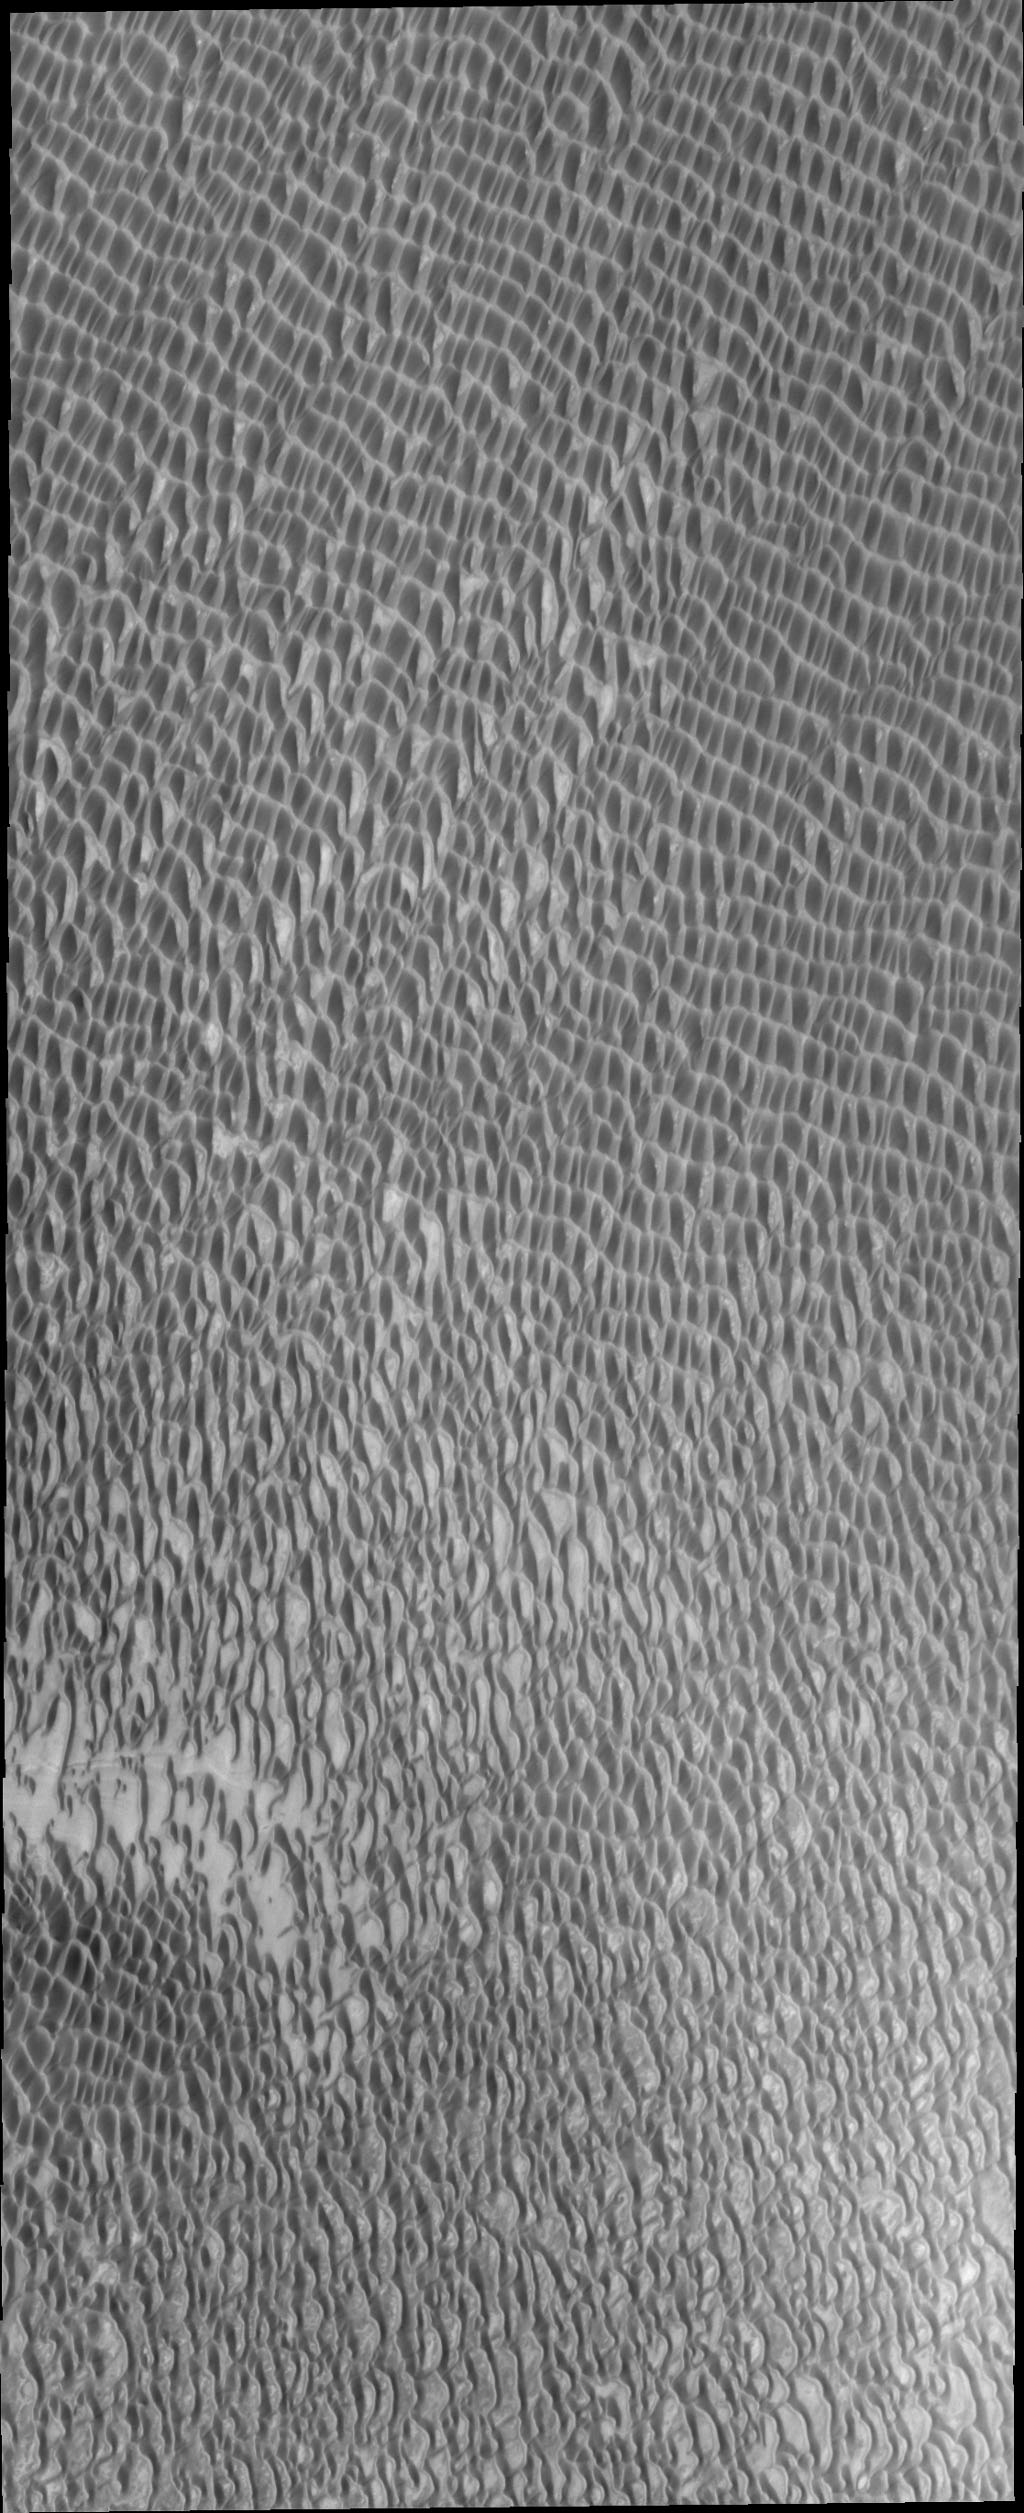 Several regions of this image captured by NASA's Mars Odyssey spacecraft reveal the solid surface the polar dunes are moving across. This surface material appears brighter than the sand dunes on Mars.